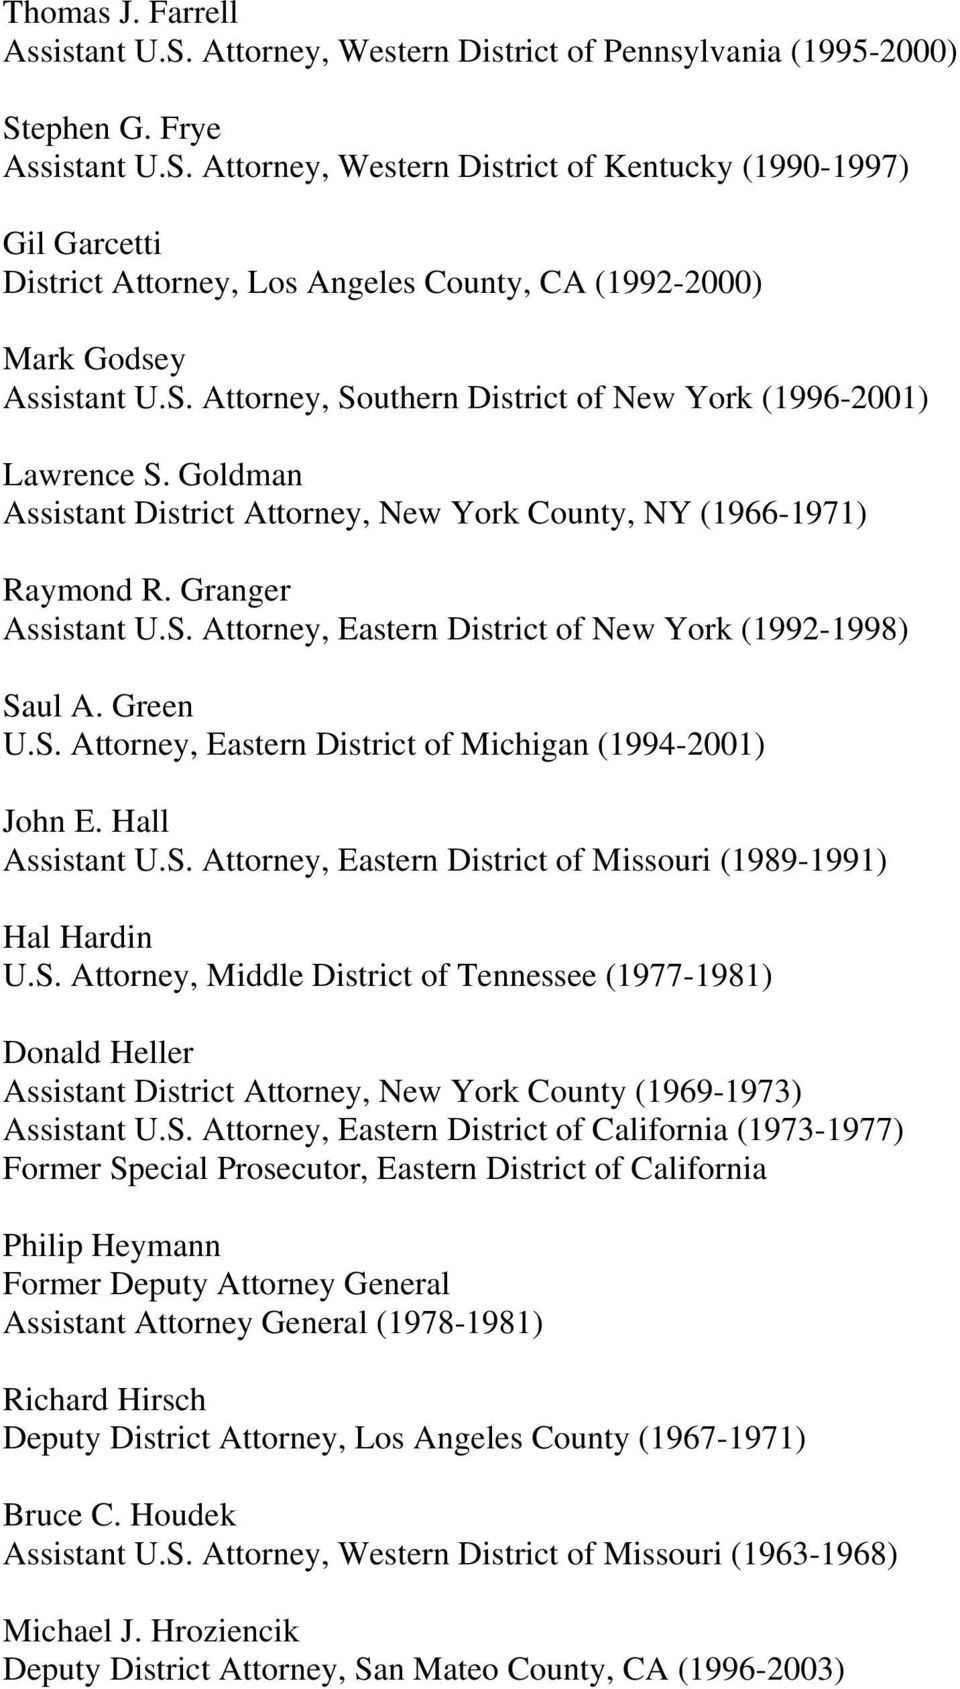 Green U.S. Attorney, Eastern District of Michigan (1994-2001) John E. Hall Assistant U.S. Attorney, Eastern District of Missouri (1989-1991) Hal Hardin U.S. Attorney, Middle District of Tennessee (1977-1981) Donald Heller Assistant District Attorney, New York County (1969-1973) Assistant U.